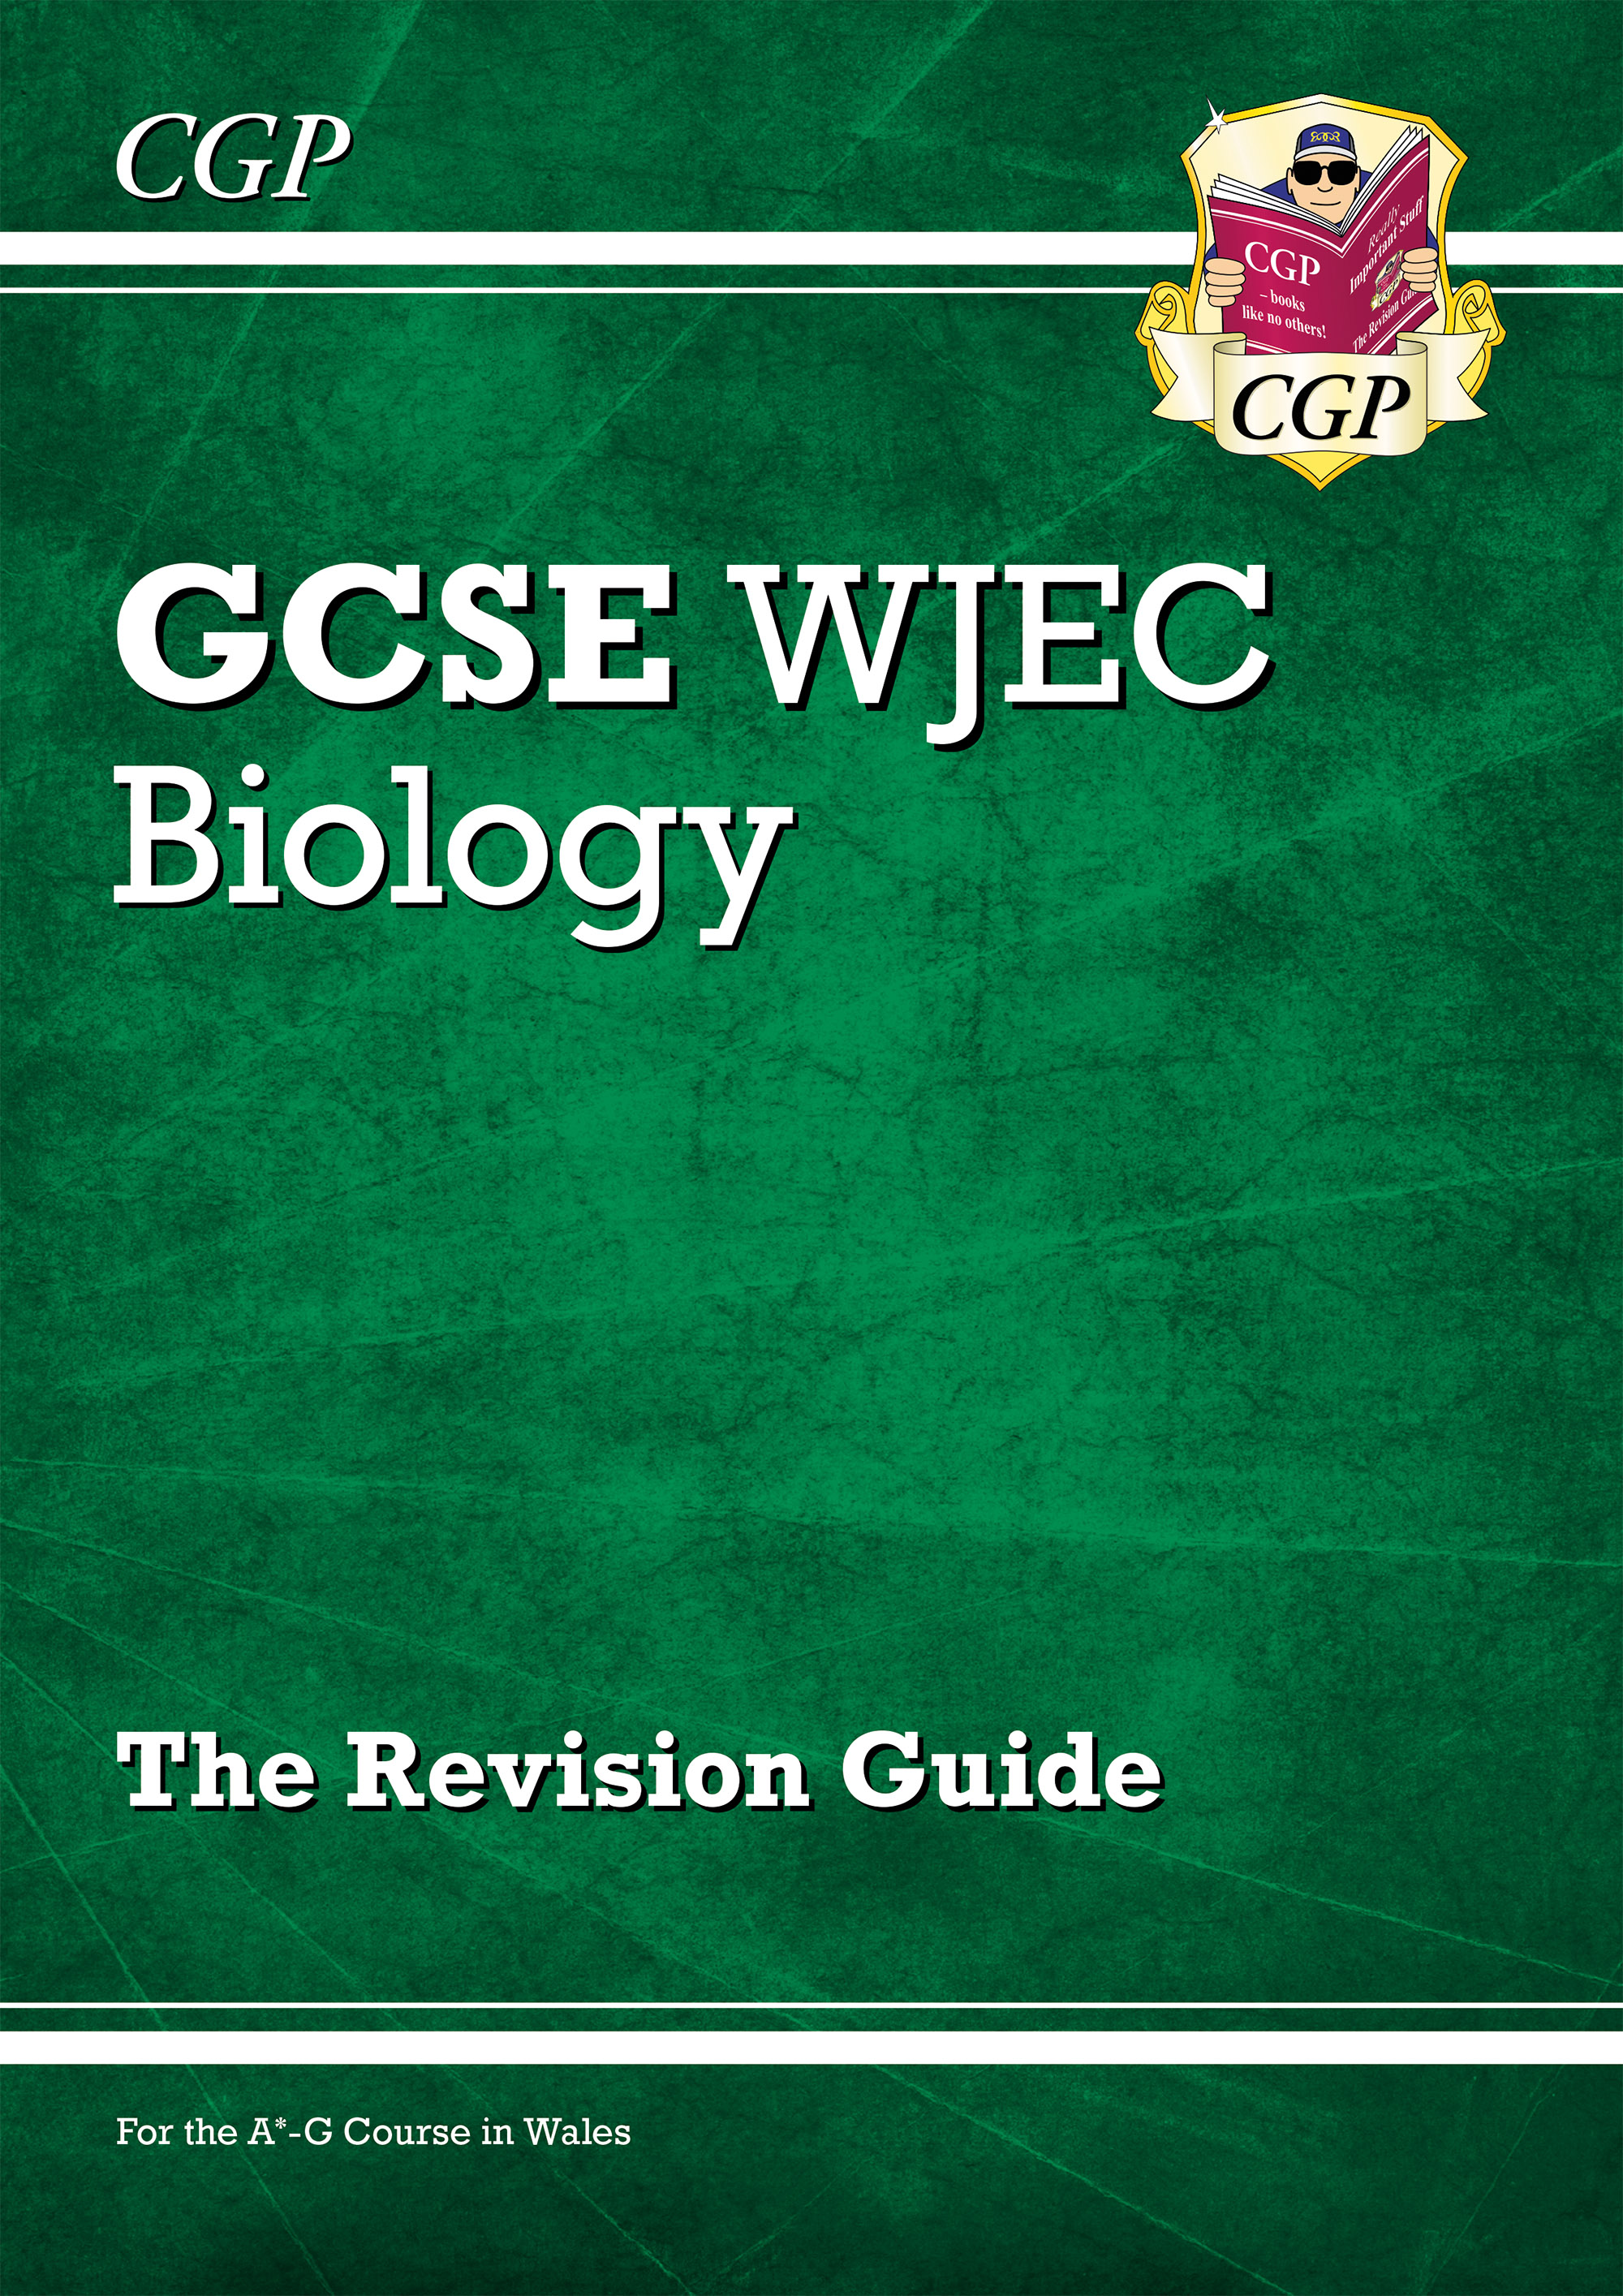 BWR41DK - New WJEC GCSE Biology Revision Guide